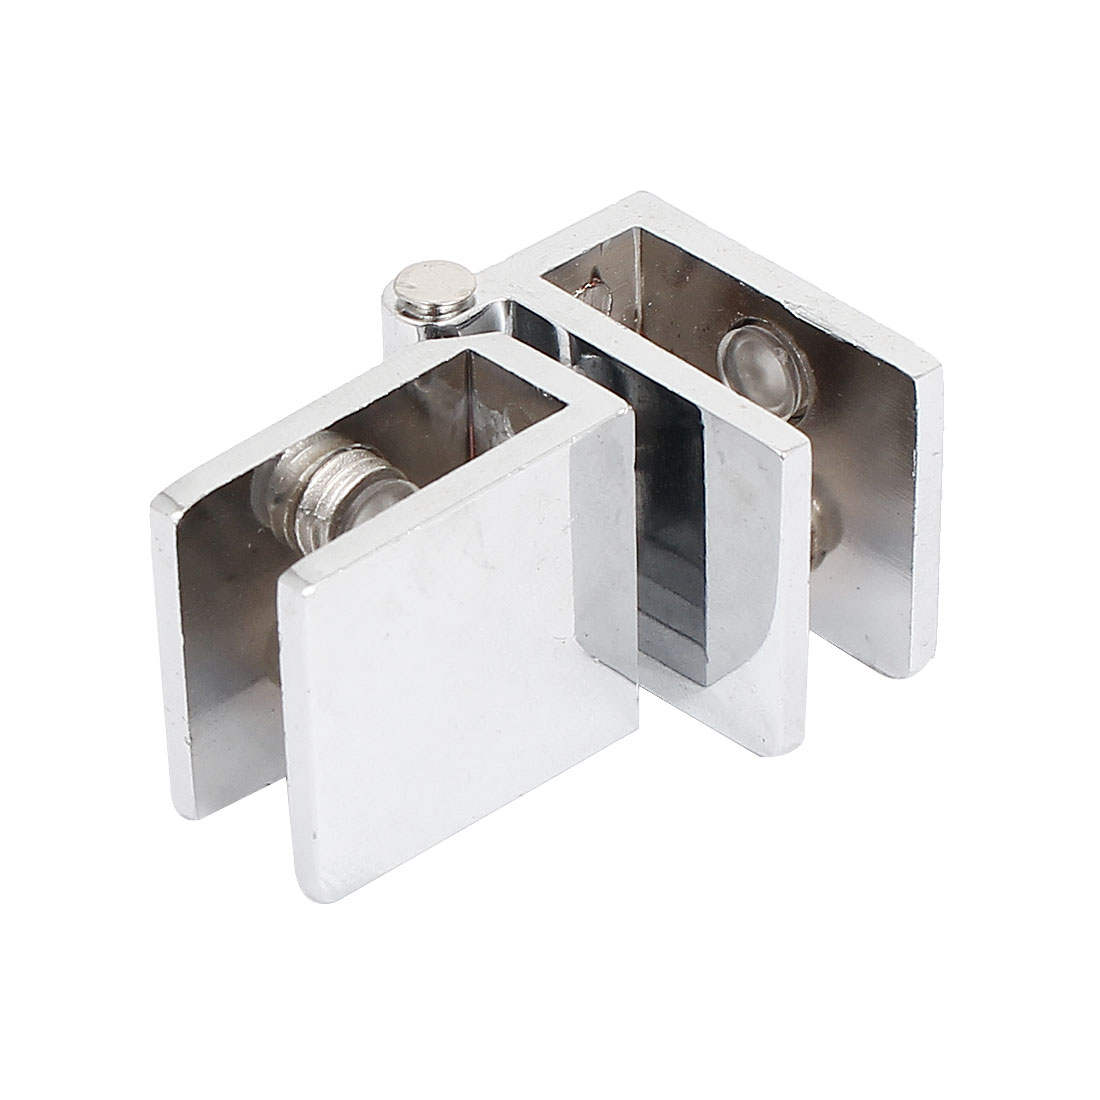 90 Degree Rotatable Adjustable 6mm-9mm Thick Zinc Alloy Glass Hinge Clamp Clip